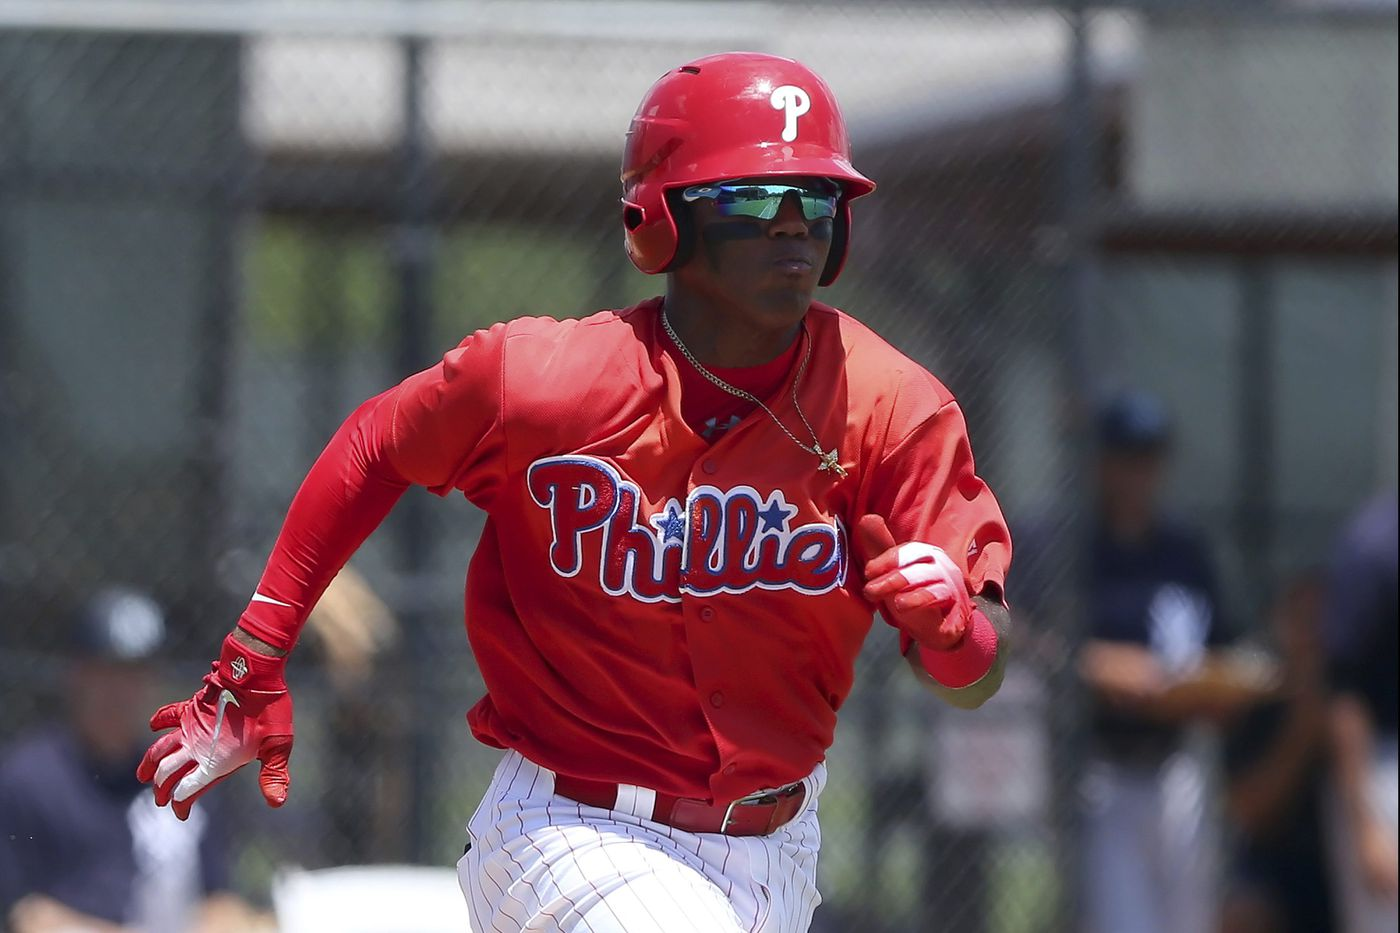 Luis Garcia, 17-year-old shortstop, is Phillies' most exciting infield prospect | Minor league analysis